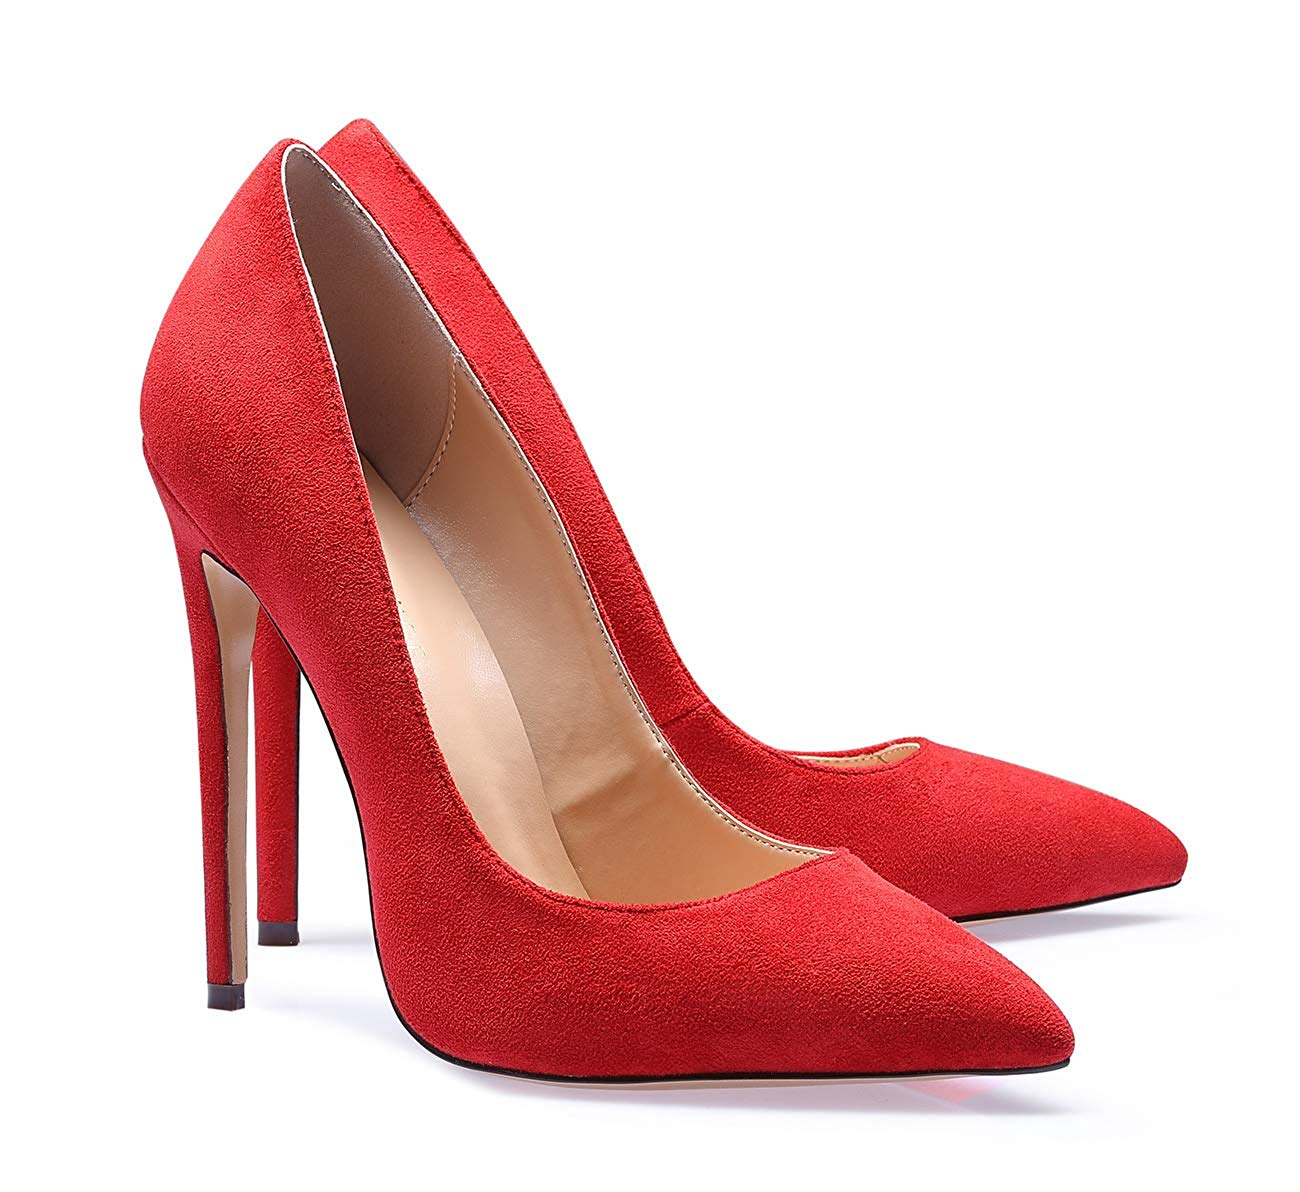 Suede Heels Shoes Red Women Wedding Shoes Bridal